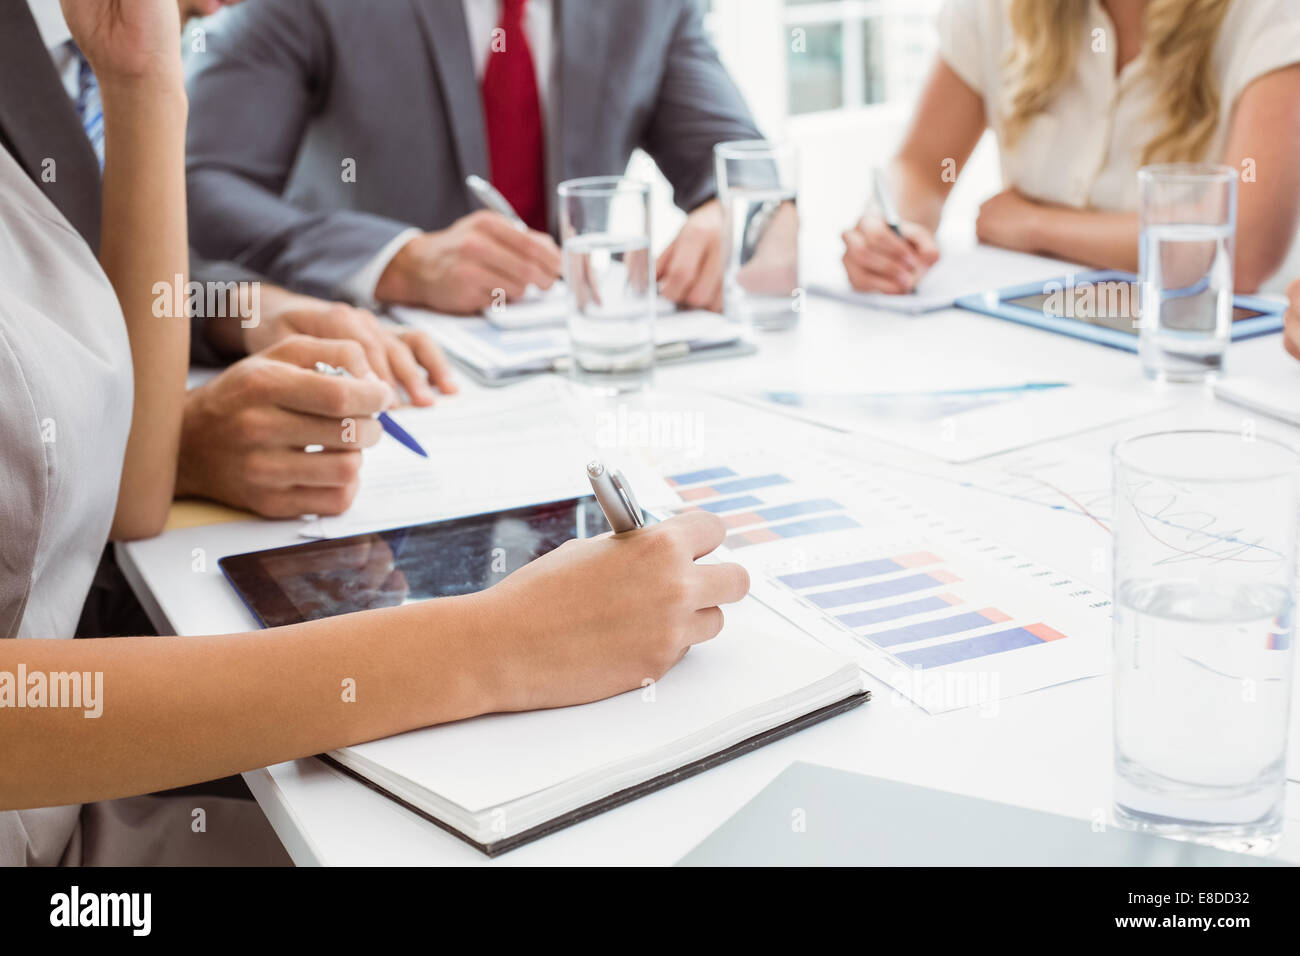 Mid section of executives writing notes in board room meeting - Stock Image